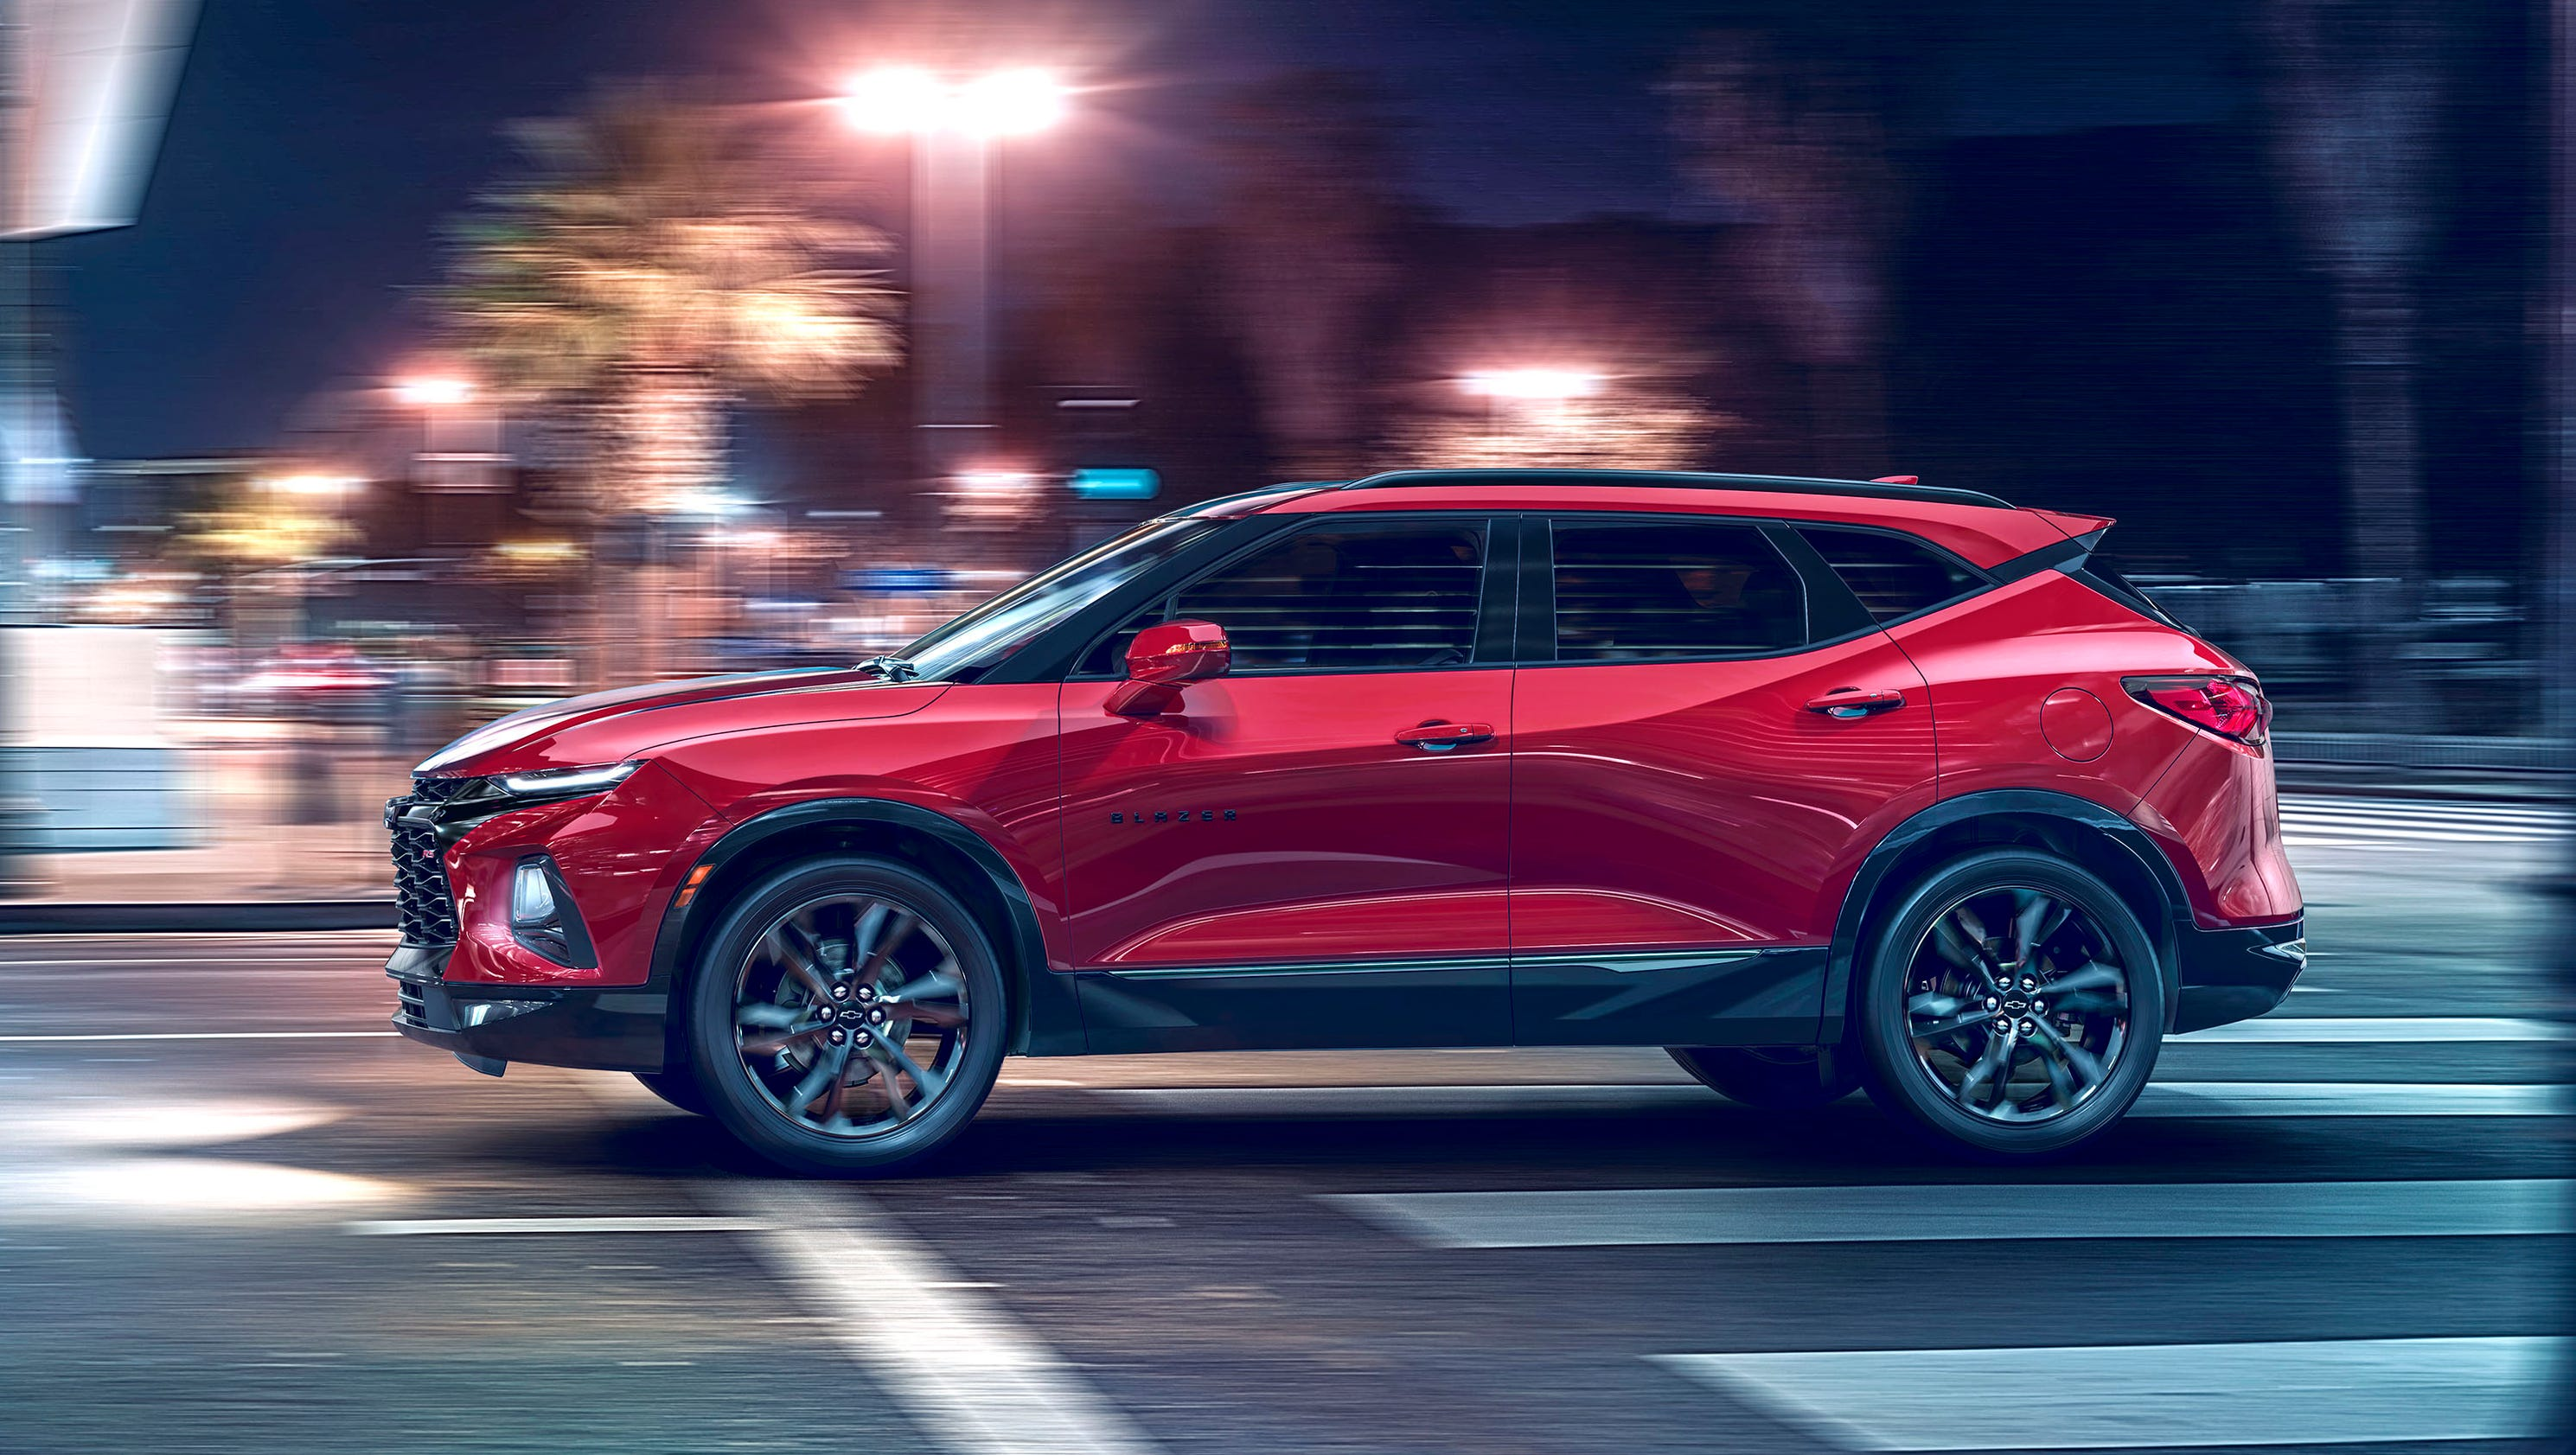 What shoppers will like about the all-new 2019 Chevy Blazer